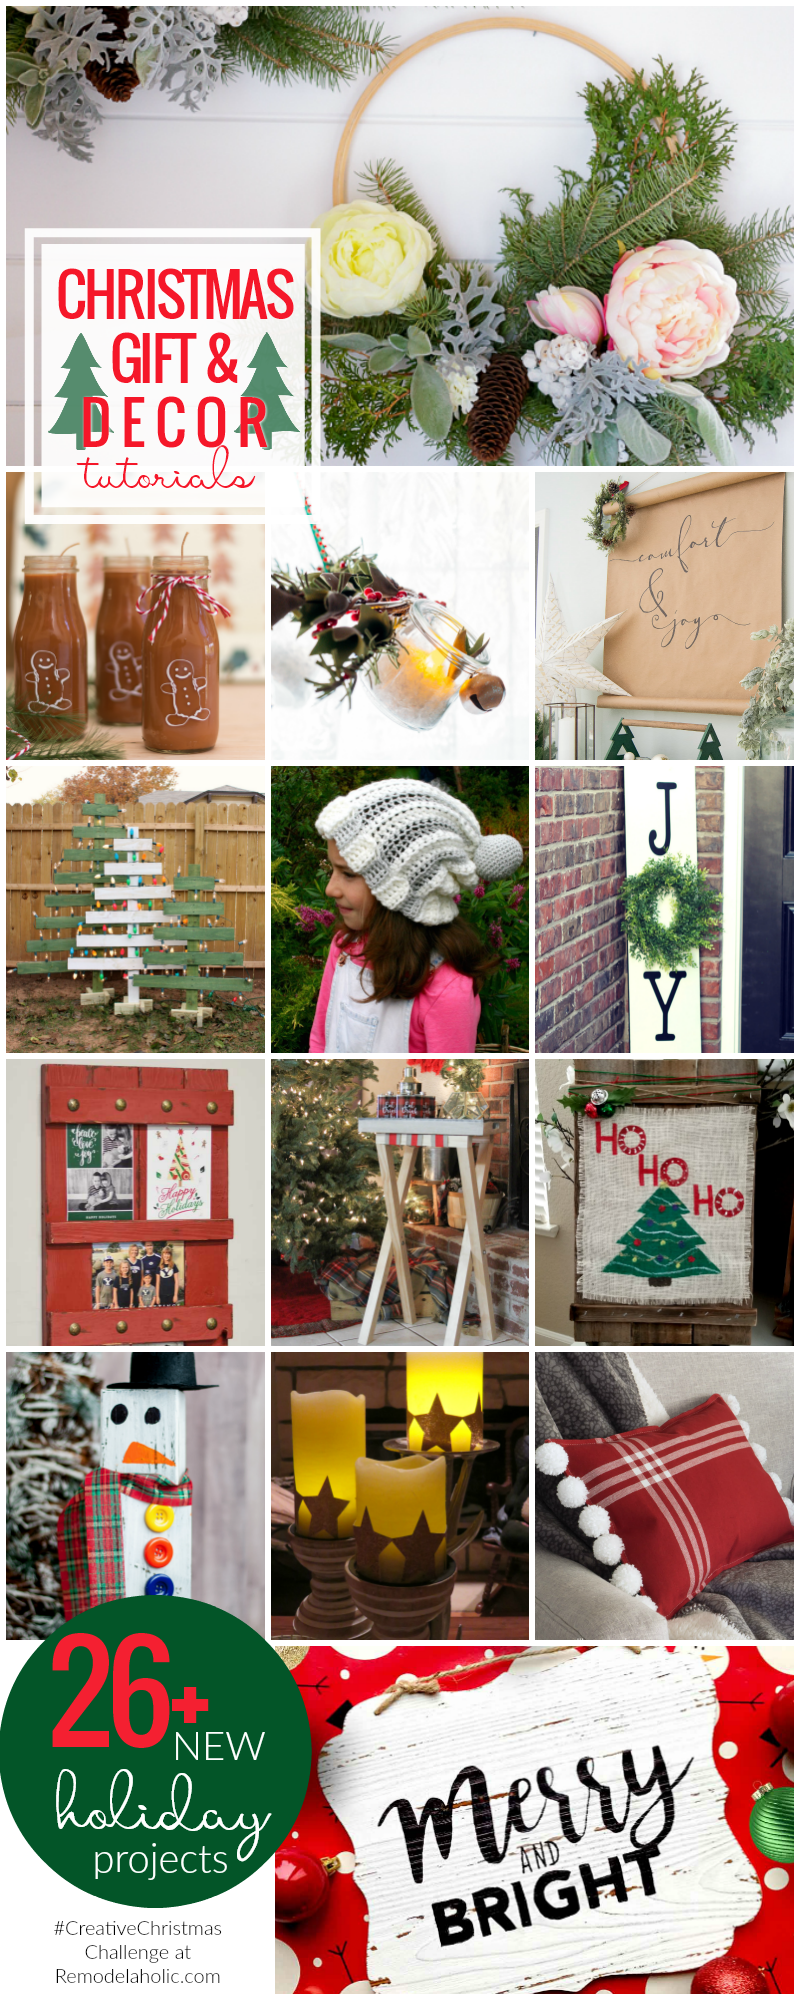 Creative Christmas Gifts And Decor! 26+ New holiday projects featured on Remodelaholic.com